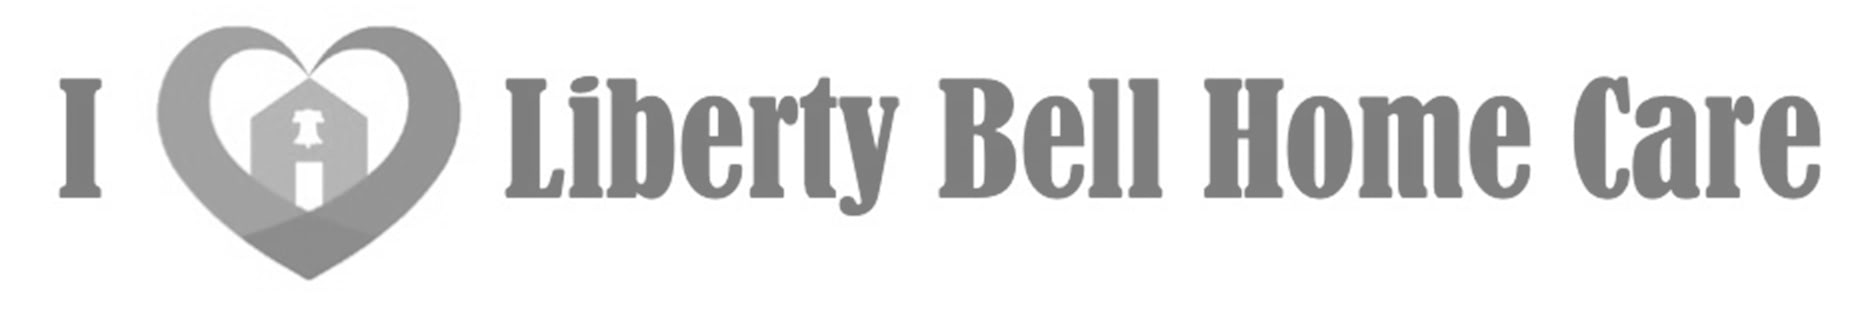 Liberty Bell Home Care Logo